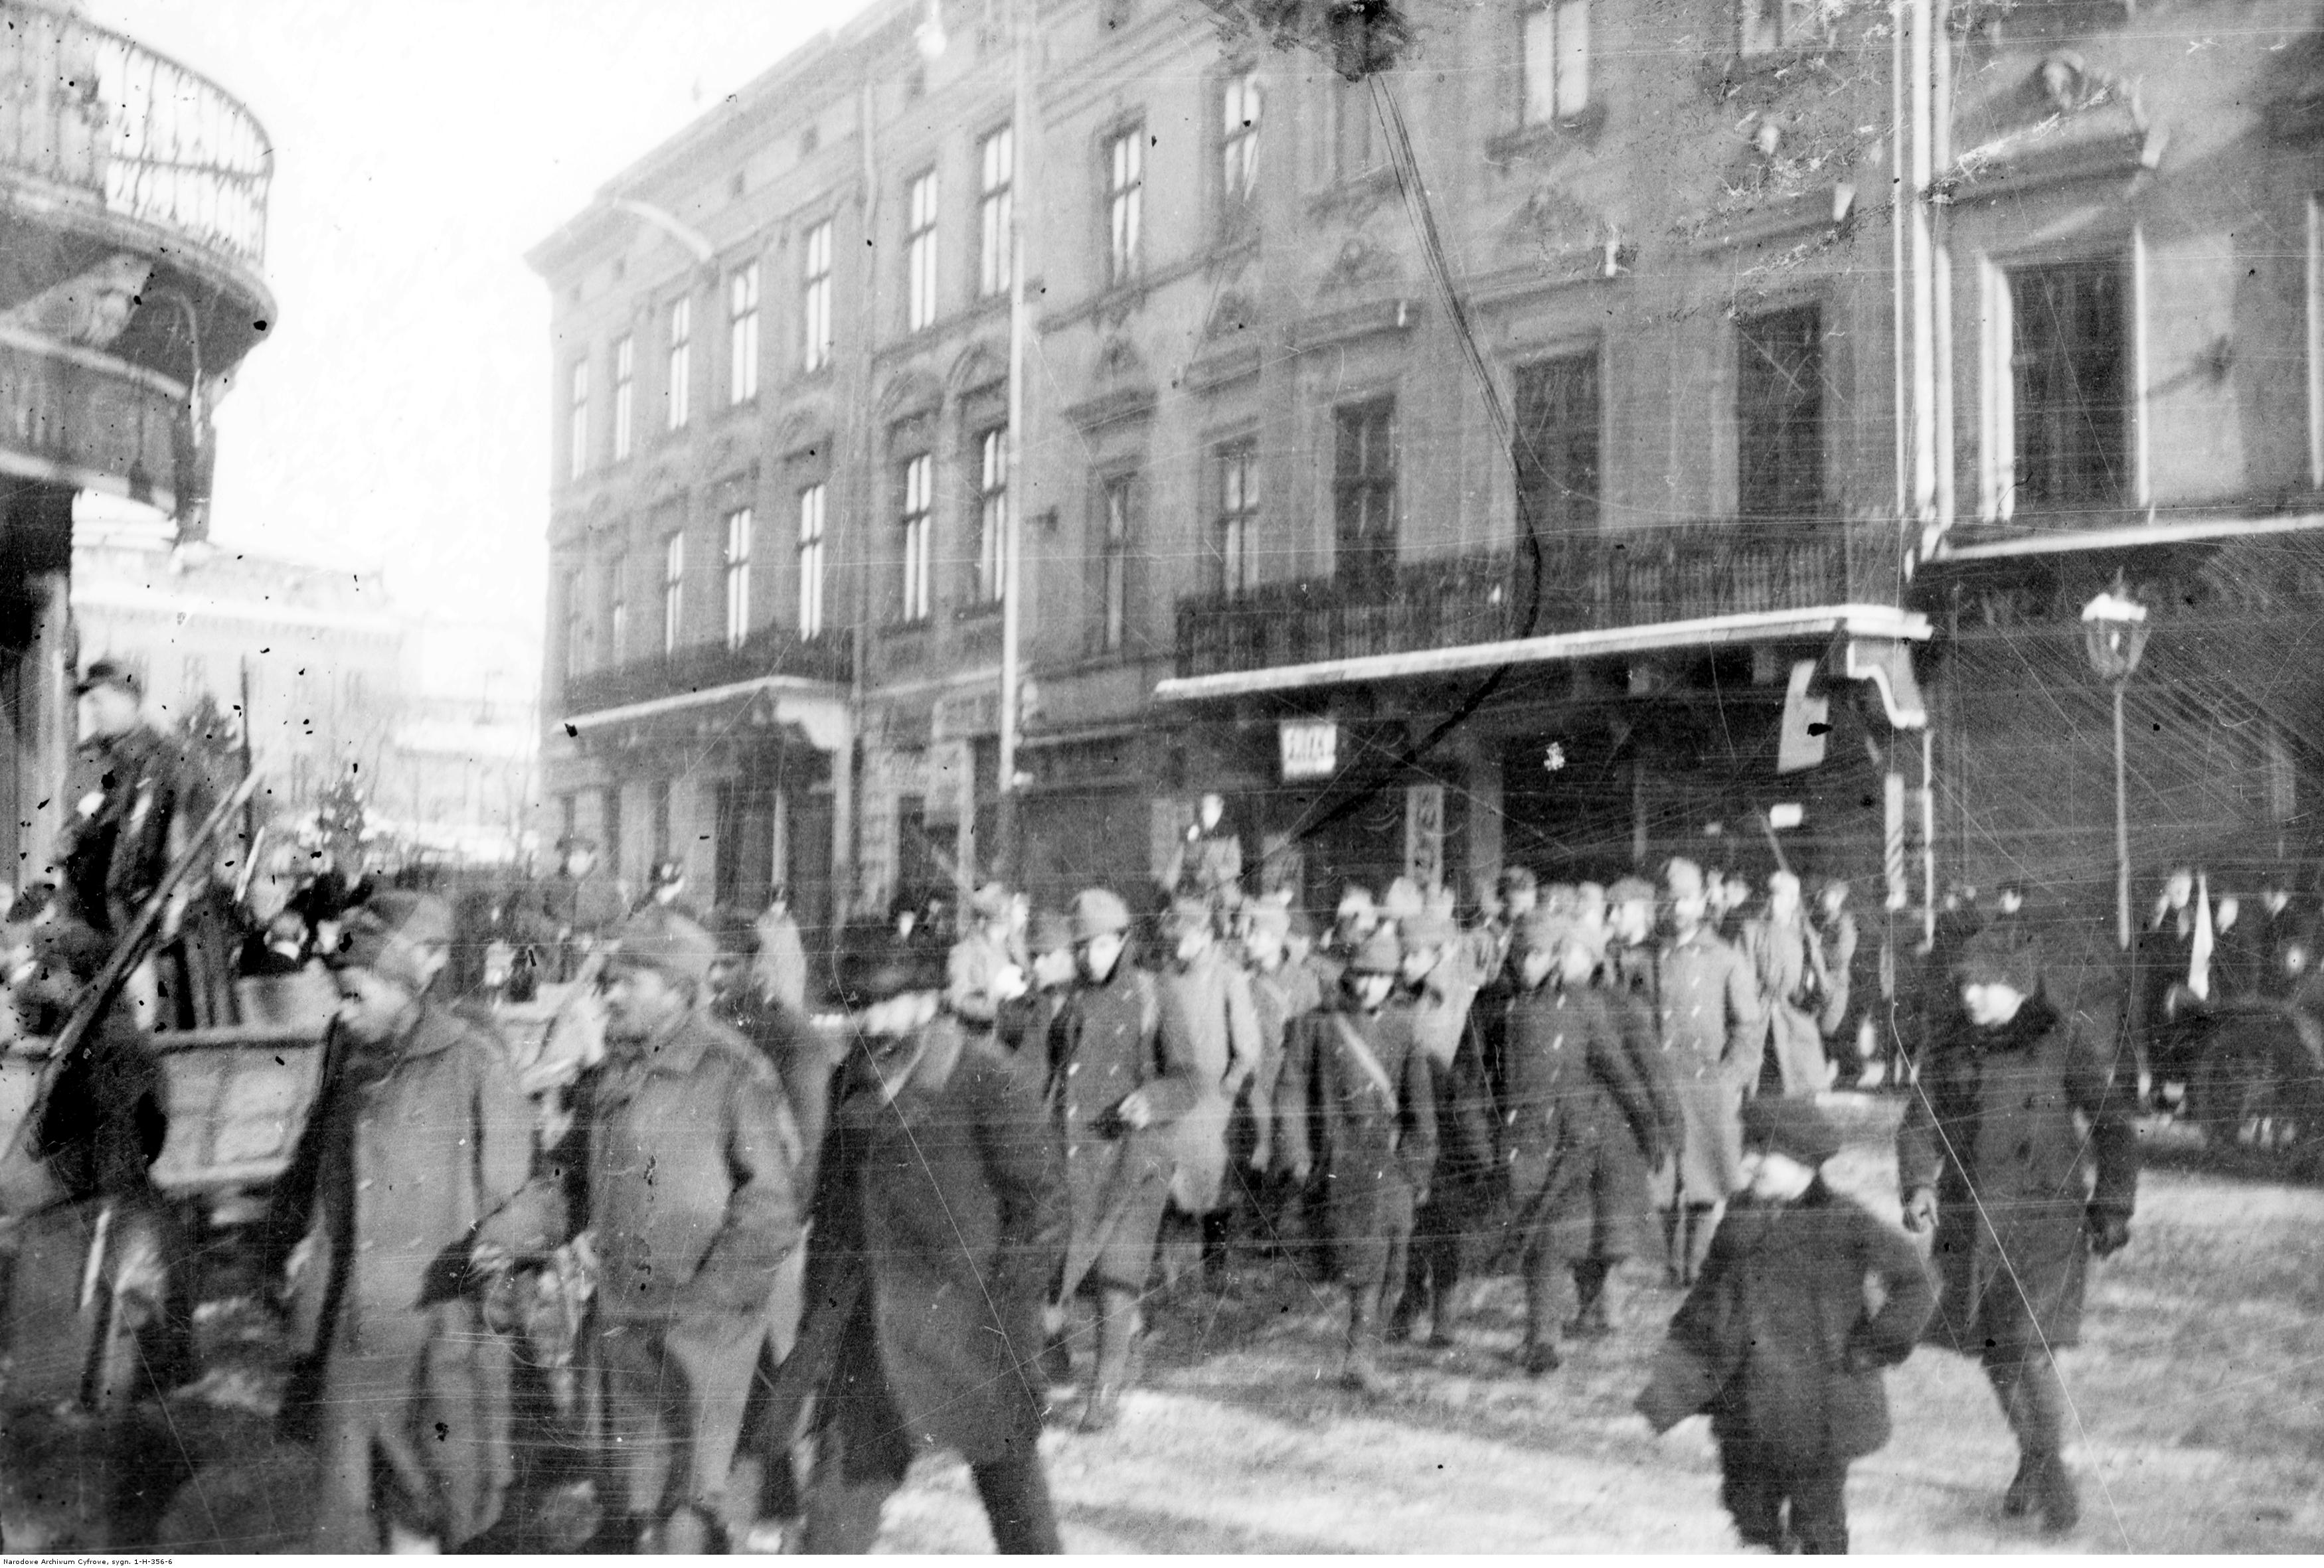 Ukrainian POWs are lead through the streets of Lviv to the court building (November 23, 1918). Source: Narodowe Archiwum Cyfrowe